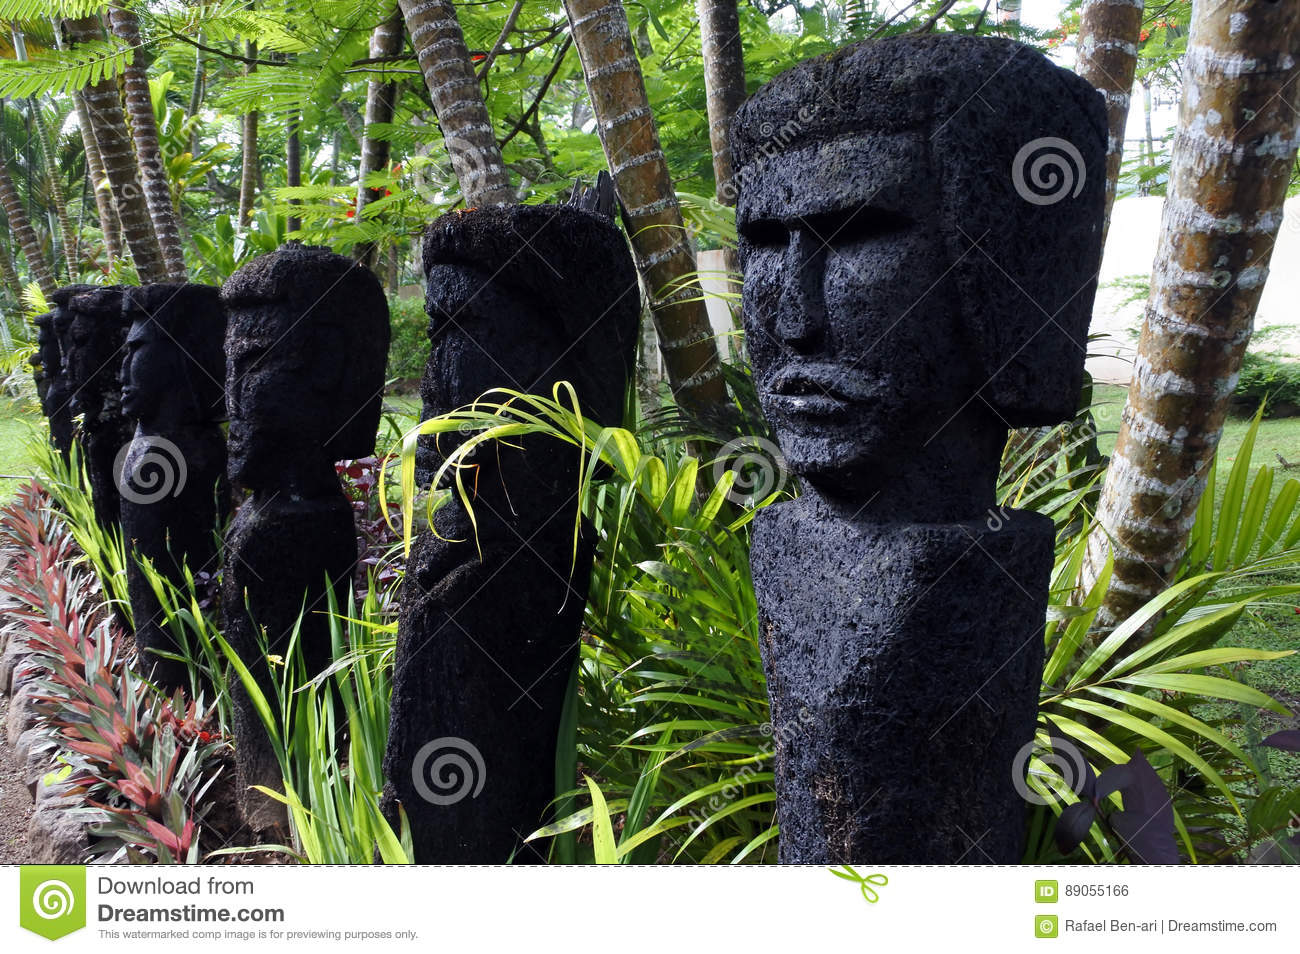 Row Of Outdoor Polynesian Human Figures Sculptures In A Garden In Fiji  Islands.